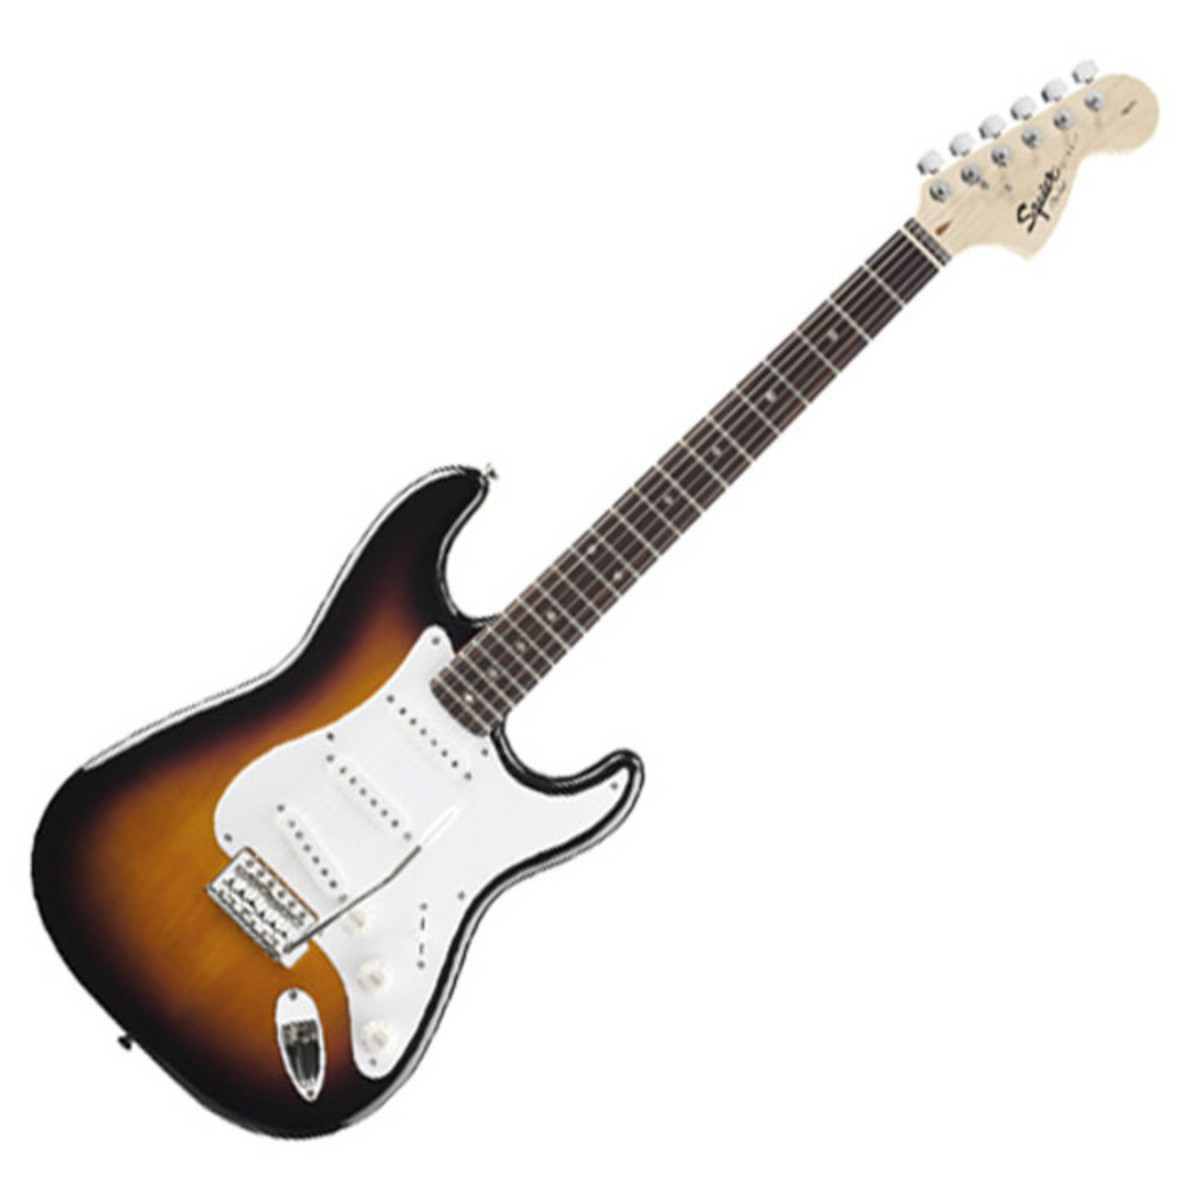 squier by fender affinity stratocaster pack with 10w amp sunburst at. Black Bedroom Furniture Sets. Home Design Ideas